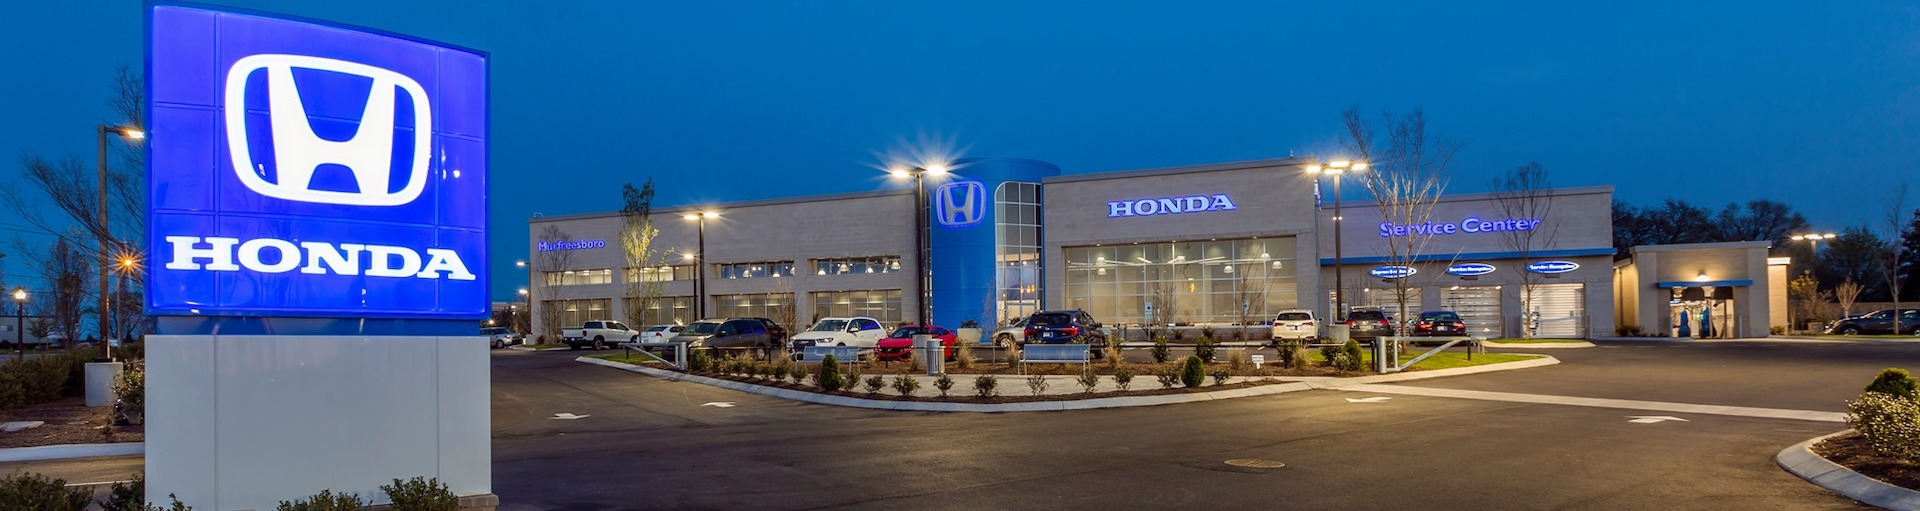 Honda of Murfreesboro Service Center